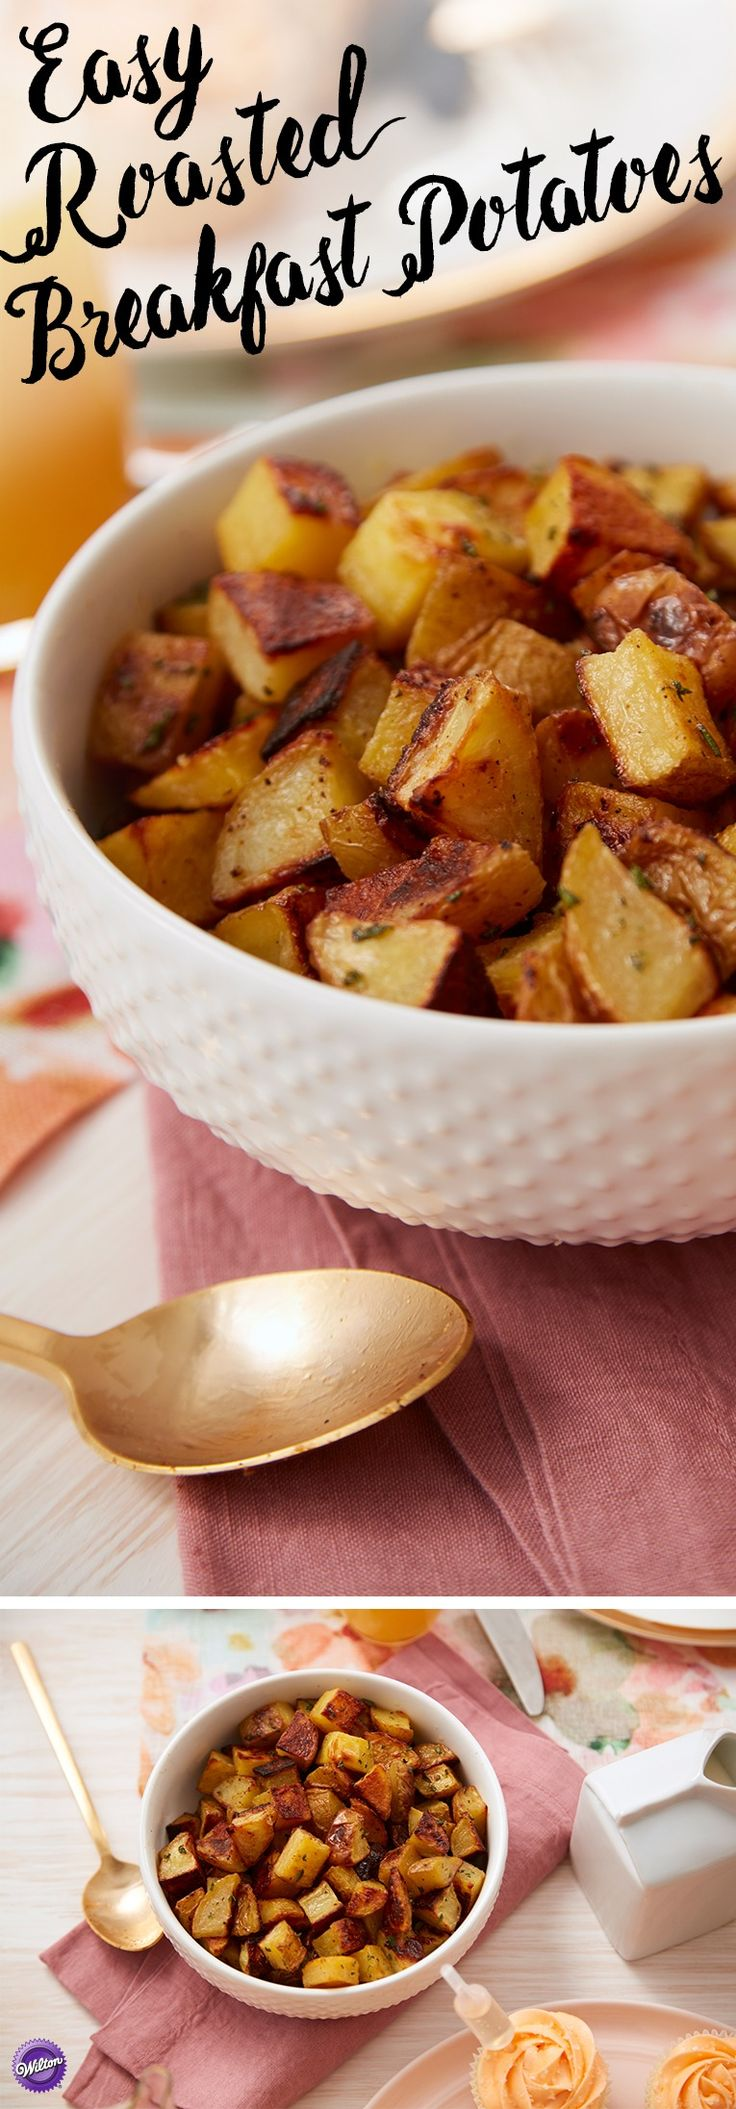 how to make the best breakfast potatoes